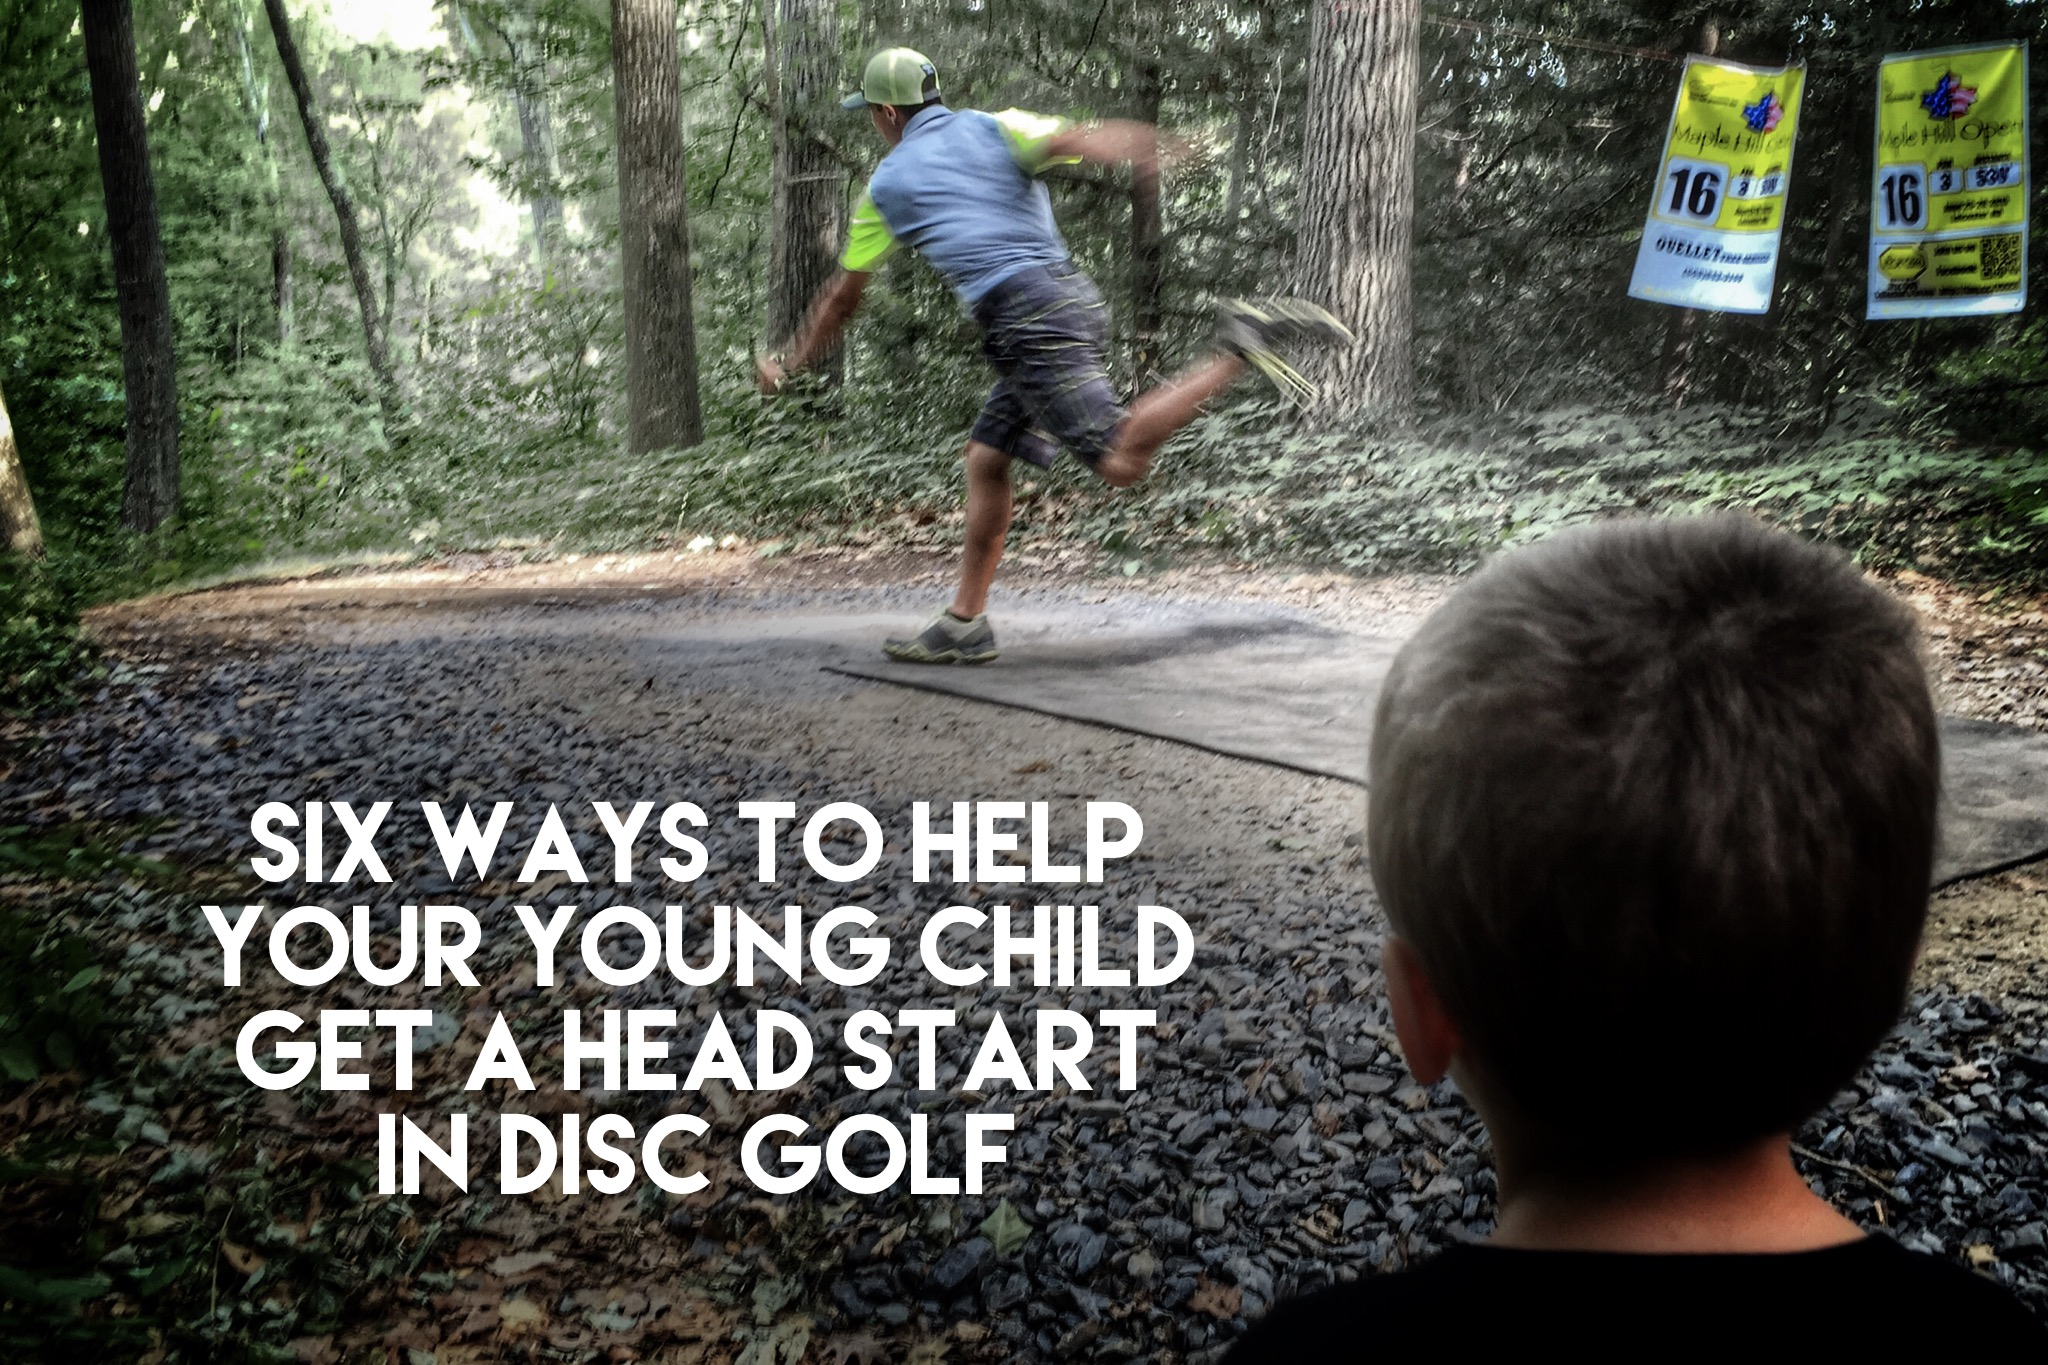 Hunter, at 5 years, old was watching the worlds best disc golf athletes compete.